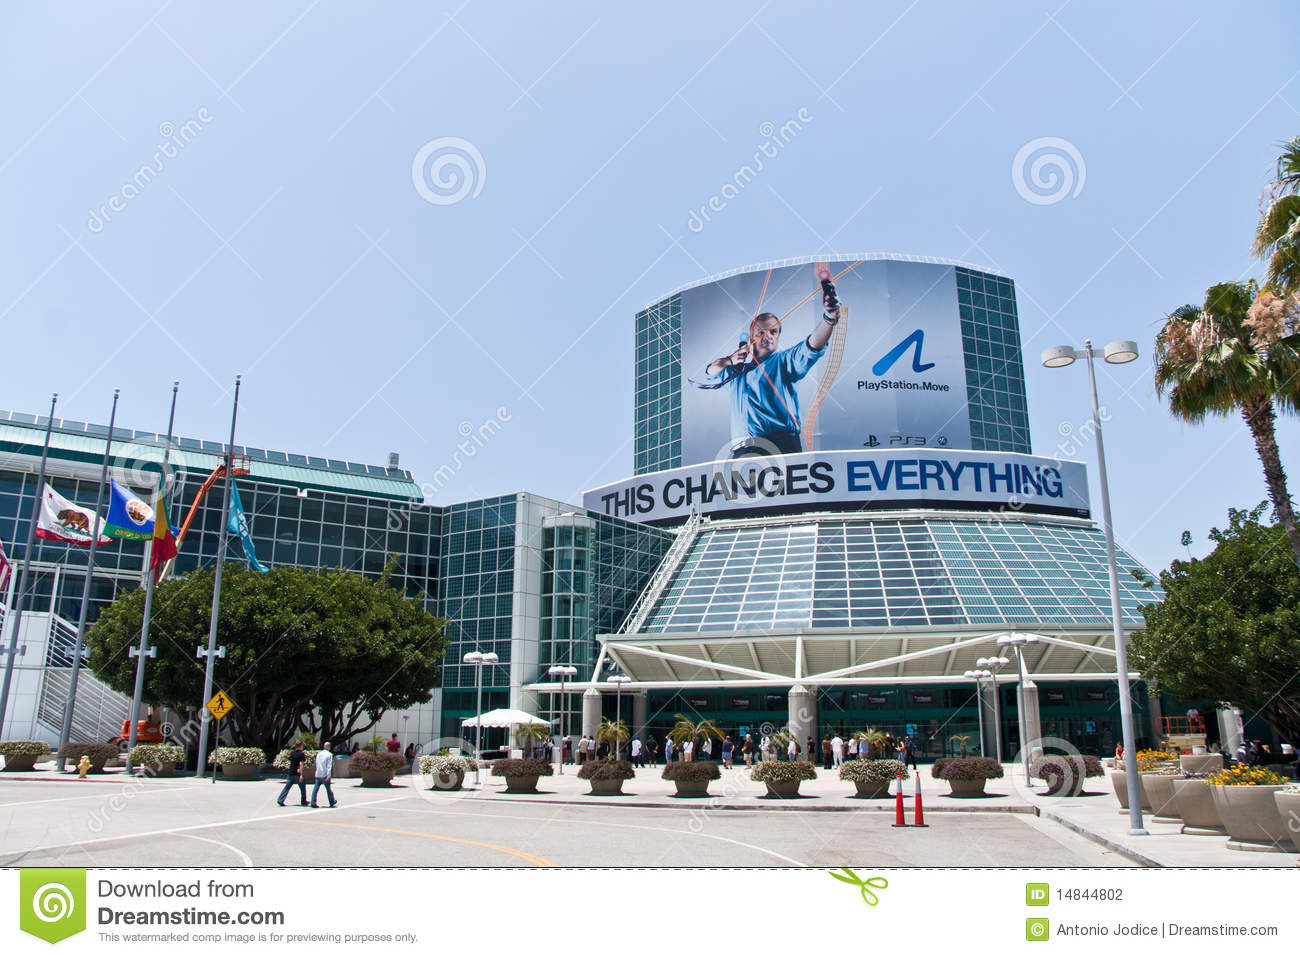 E3 2010, PlayStation Move Sponsorship of the Event